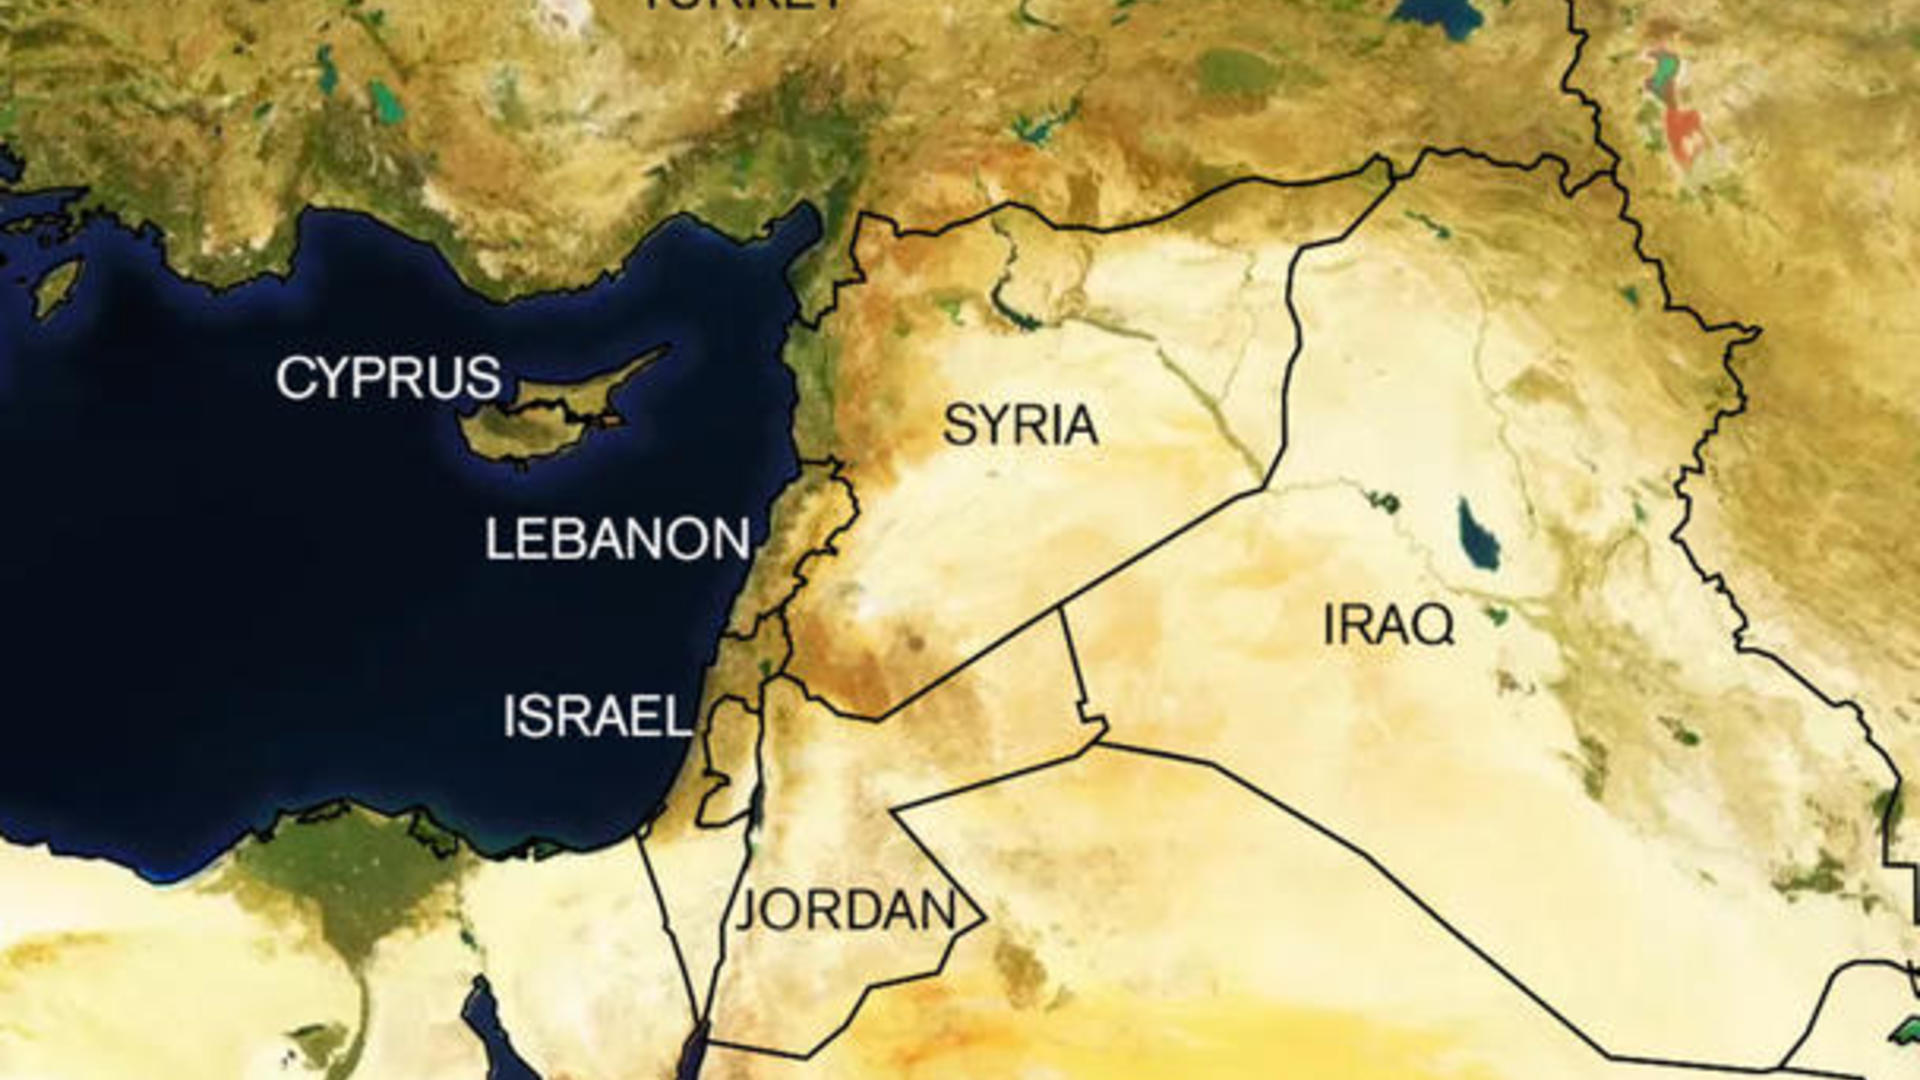 Map showing Syria and neighboring countries